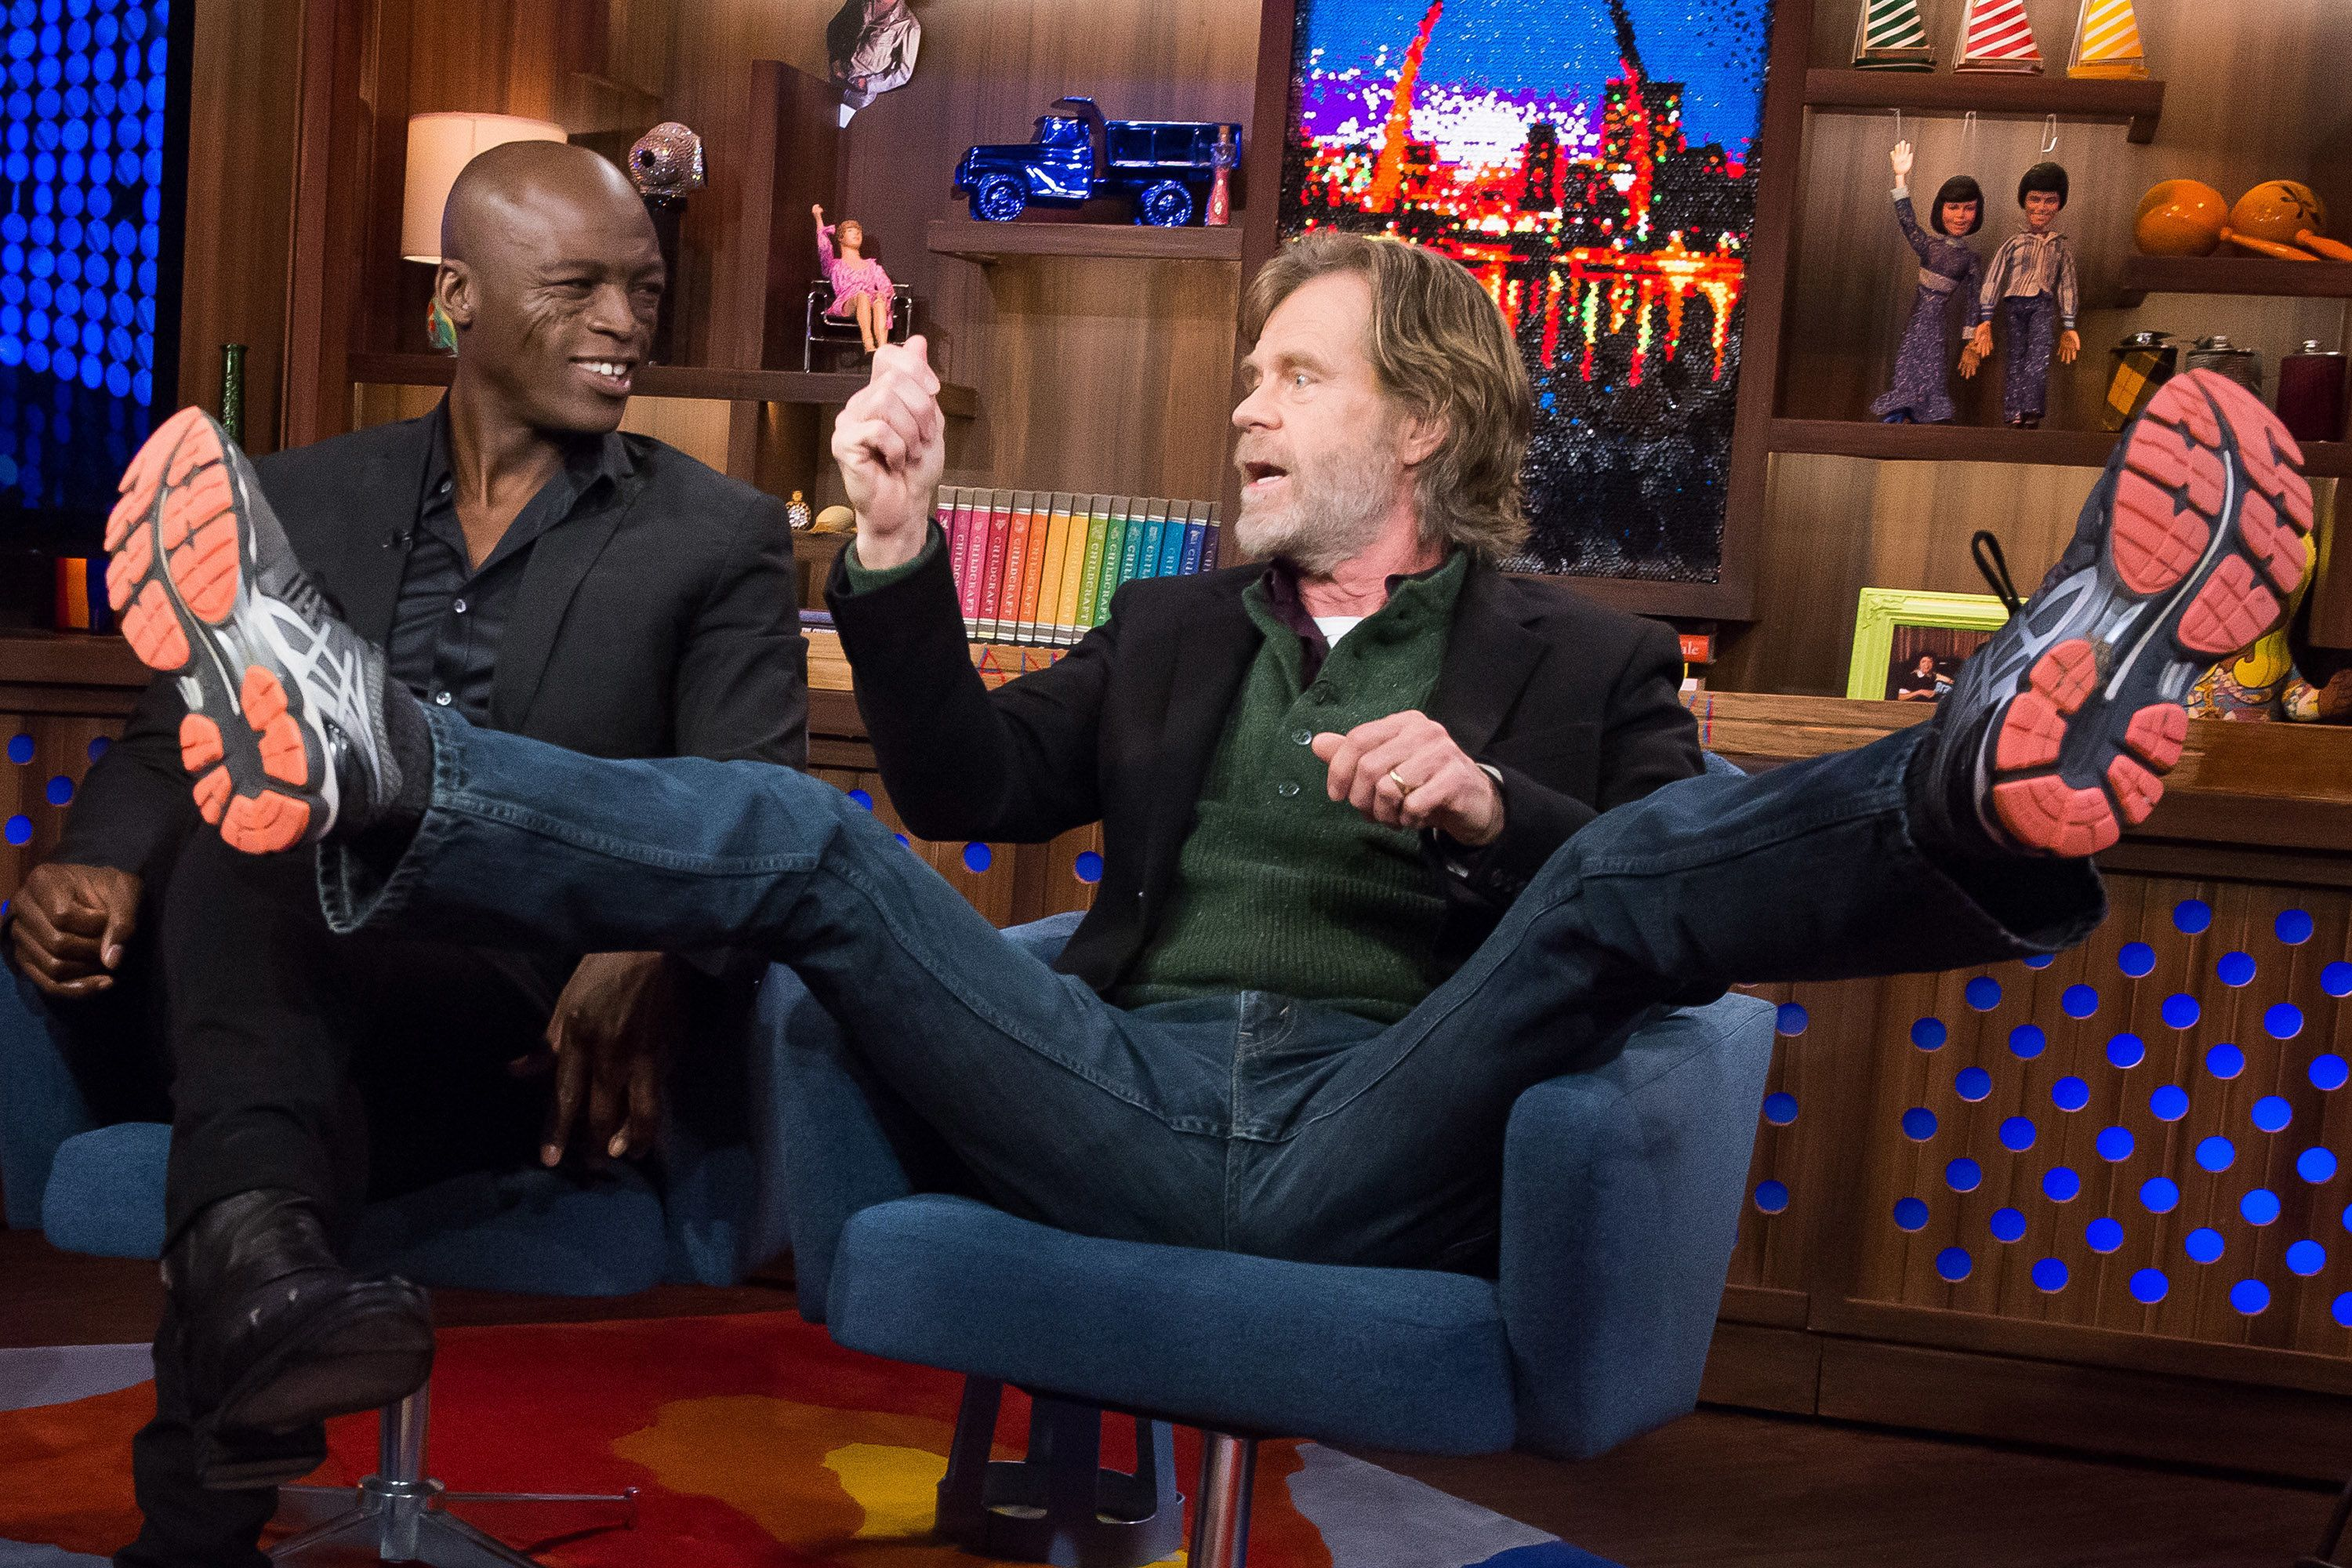 WATCH WHAT HAPPENS LIVE -- Pictured (l-r): Seal and William H. Macy -- (Photo by: Charles Sykes/Bravo/NBCU Photo Bank via Getty Images)